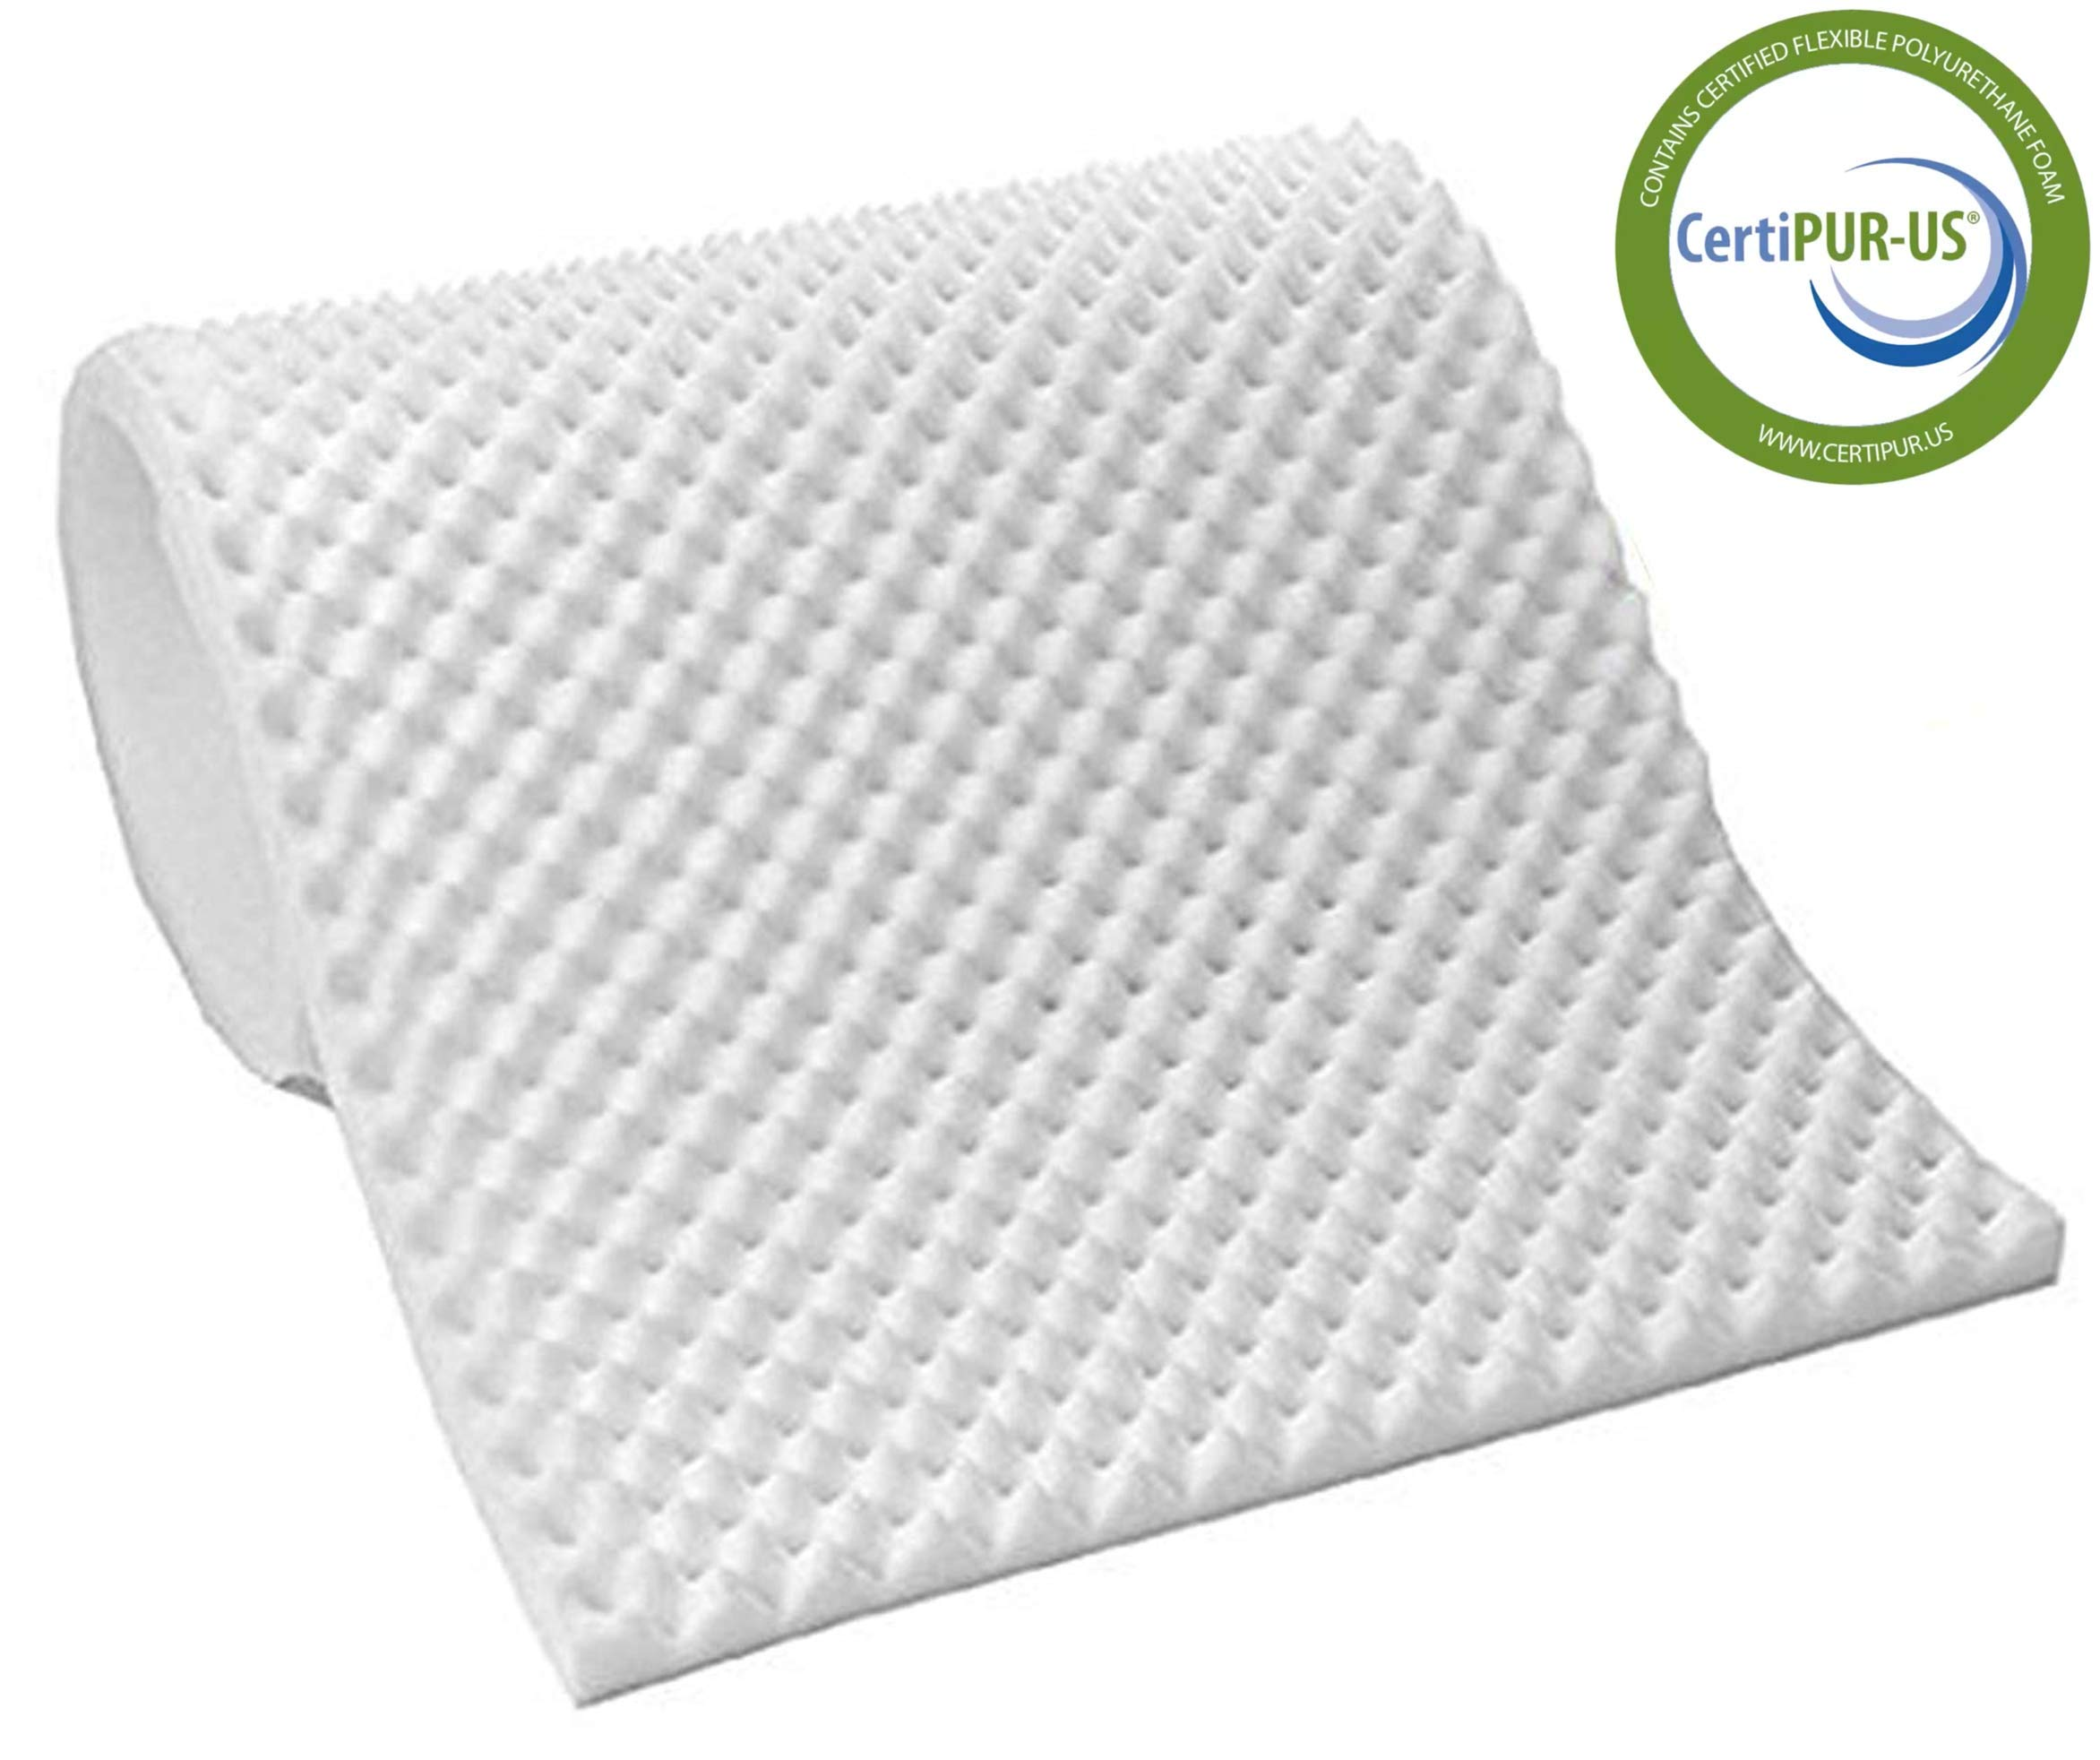 Vaunn Medical Egg Crate Convoluted Foam Mattress Pad - 3'' Thick EggCrate Mattress Topper (Hospital Bed Twin Size) by Vaunn